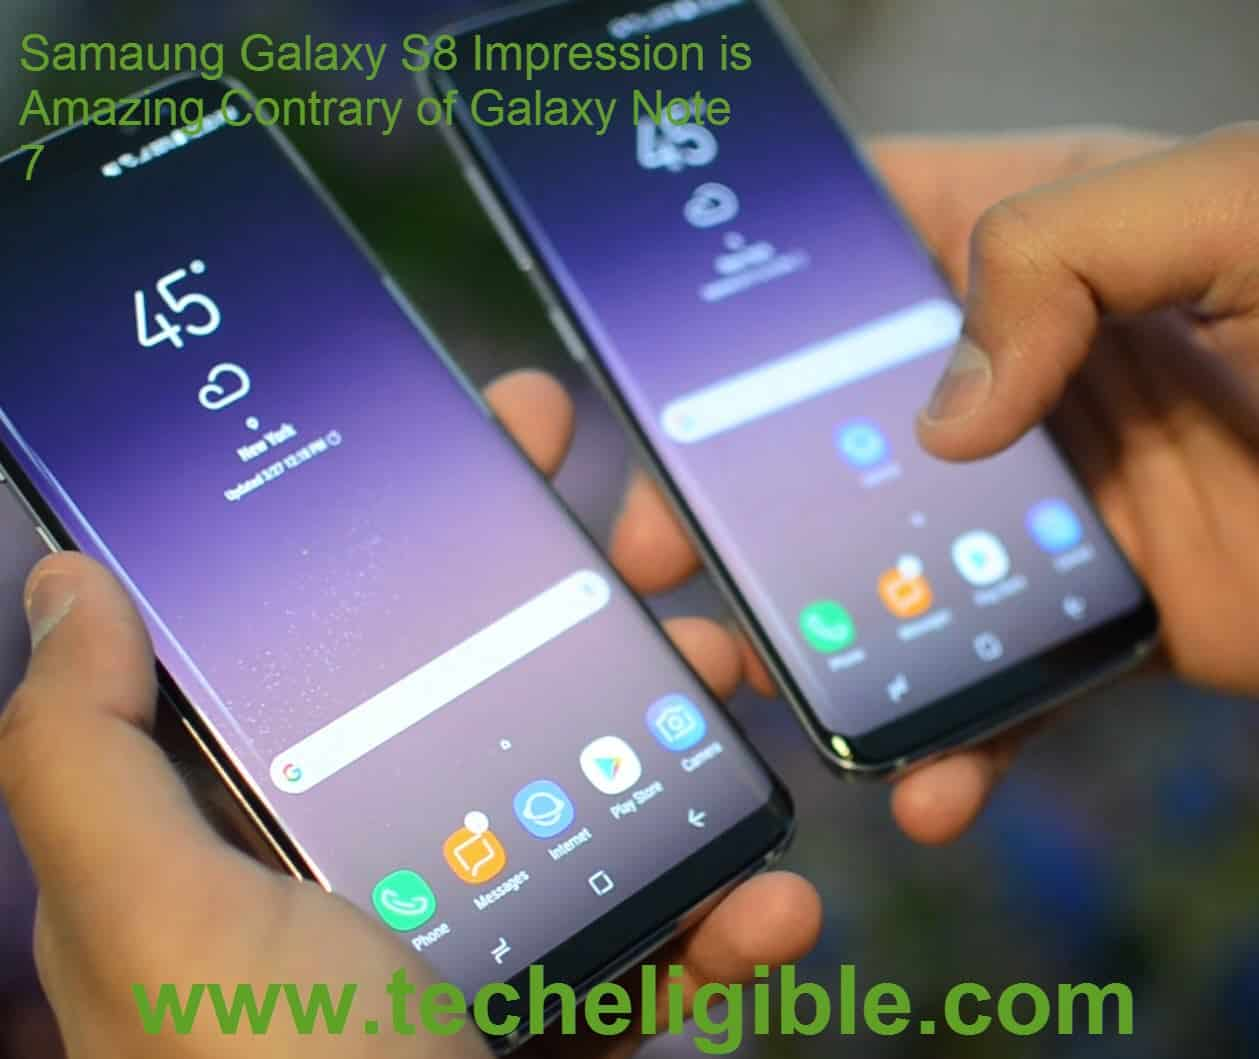 Galaxy S8 impression, Bixby galaxy s8, Galaxy Note 7